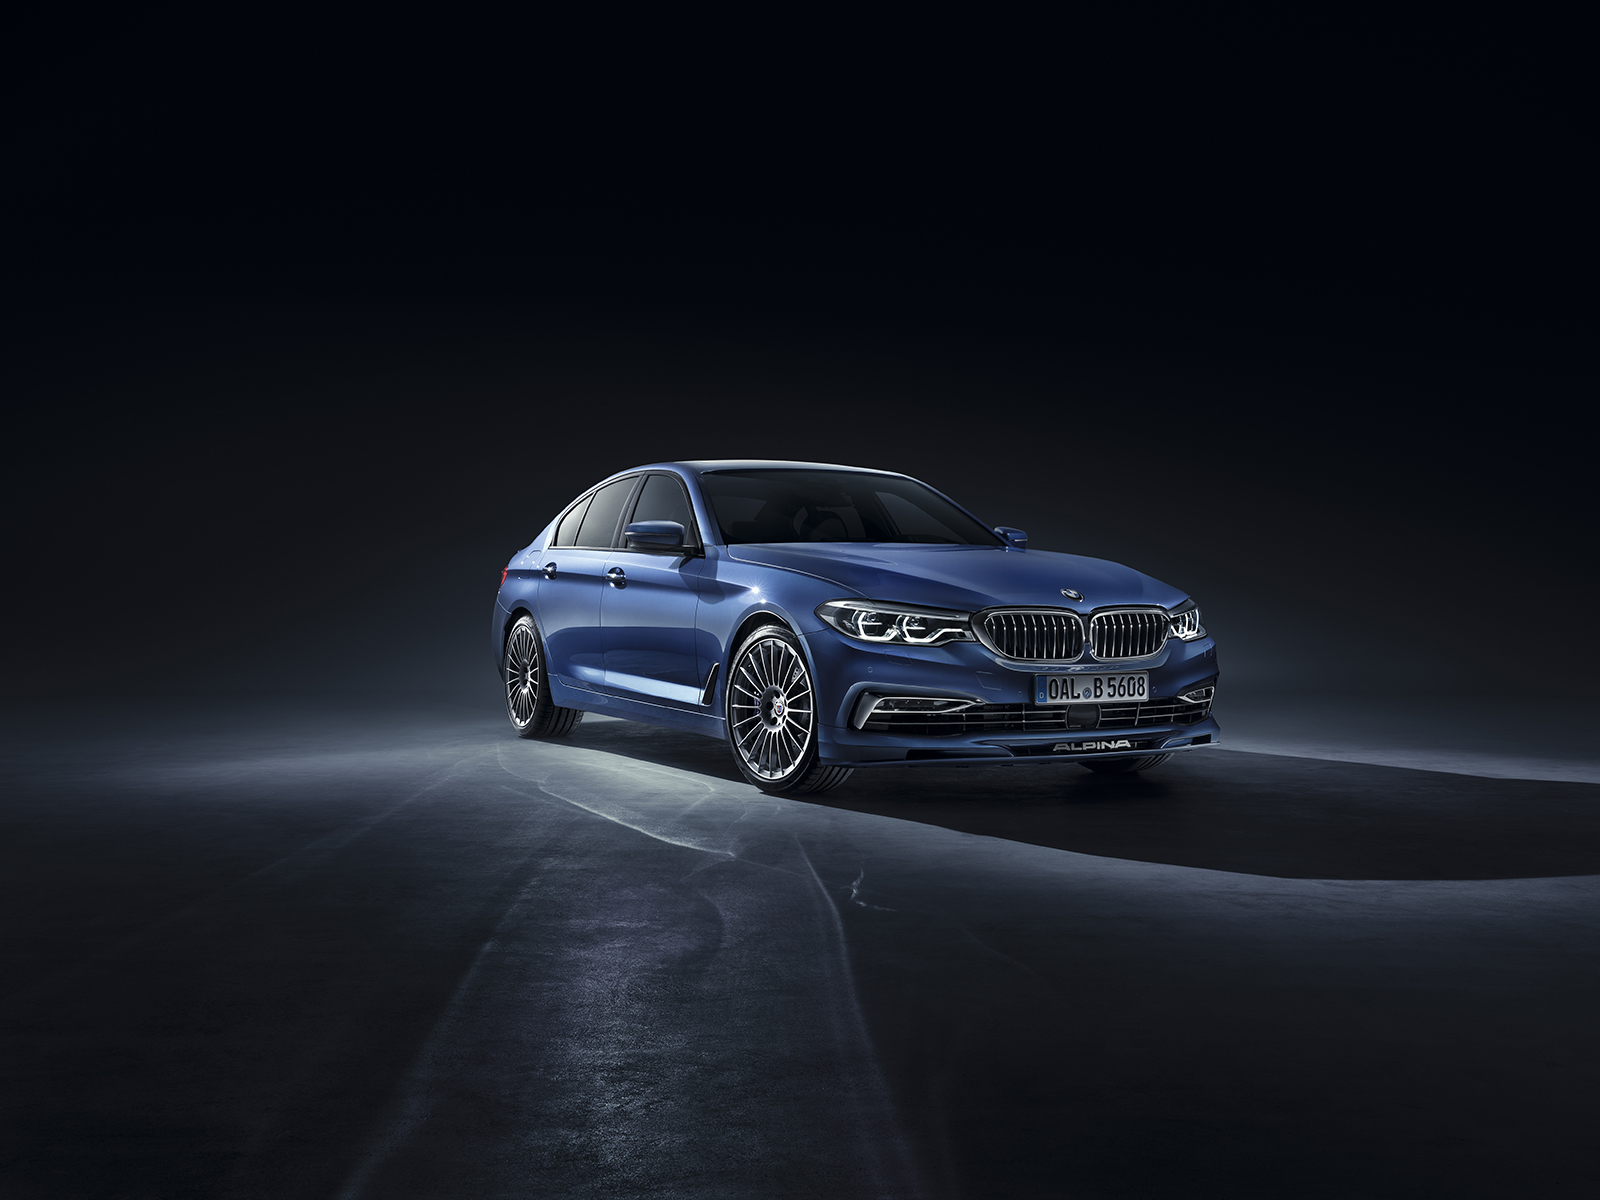 2017 03 BMW ALPINA B5 BITURBO 01